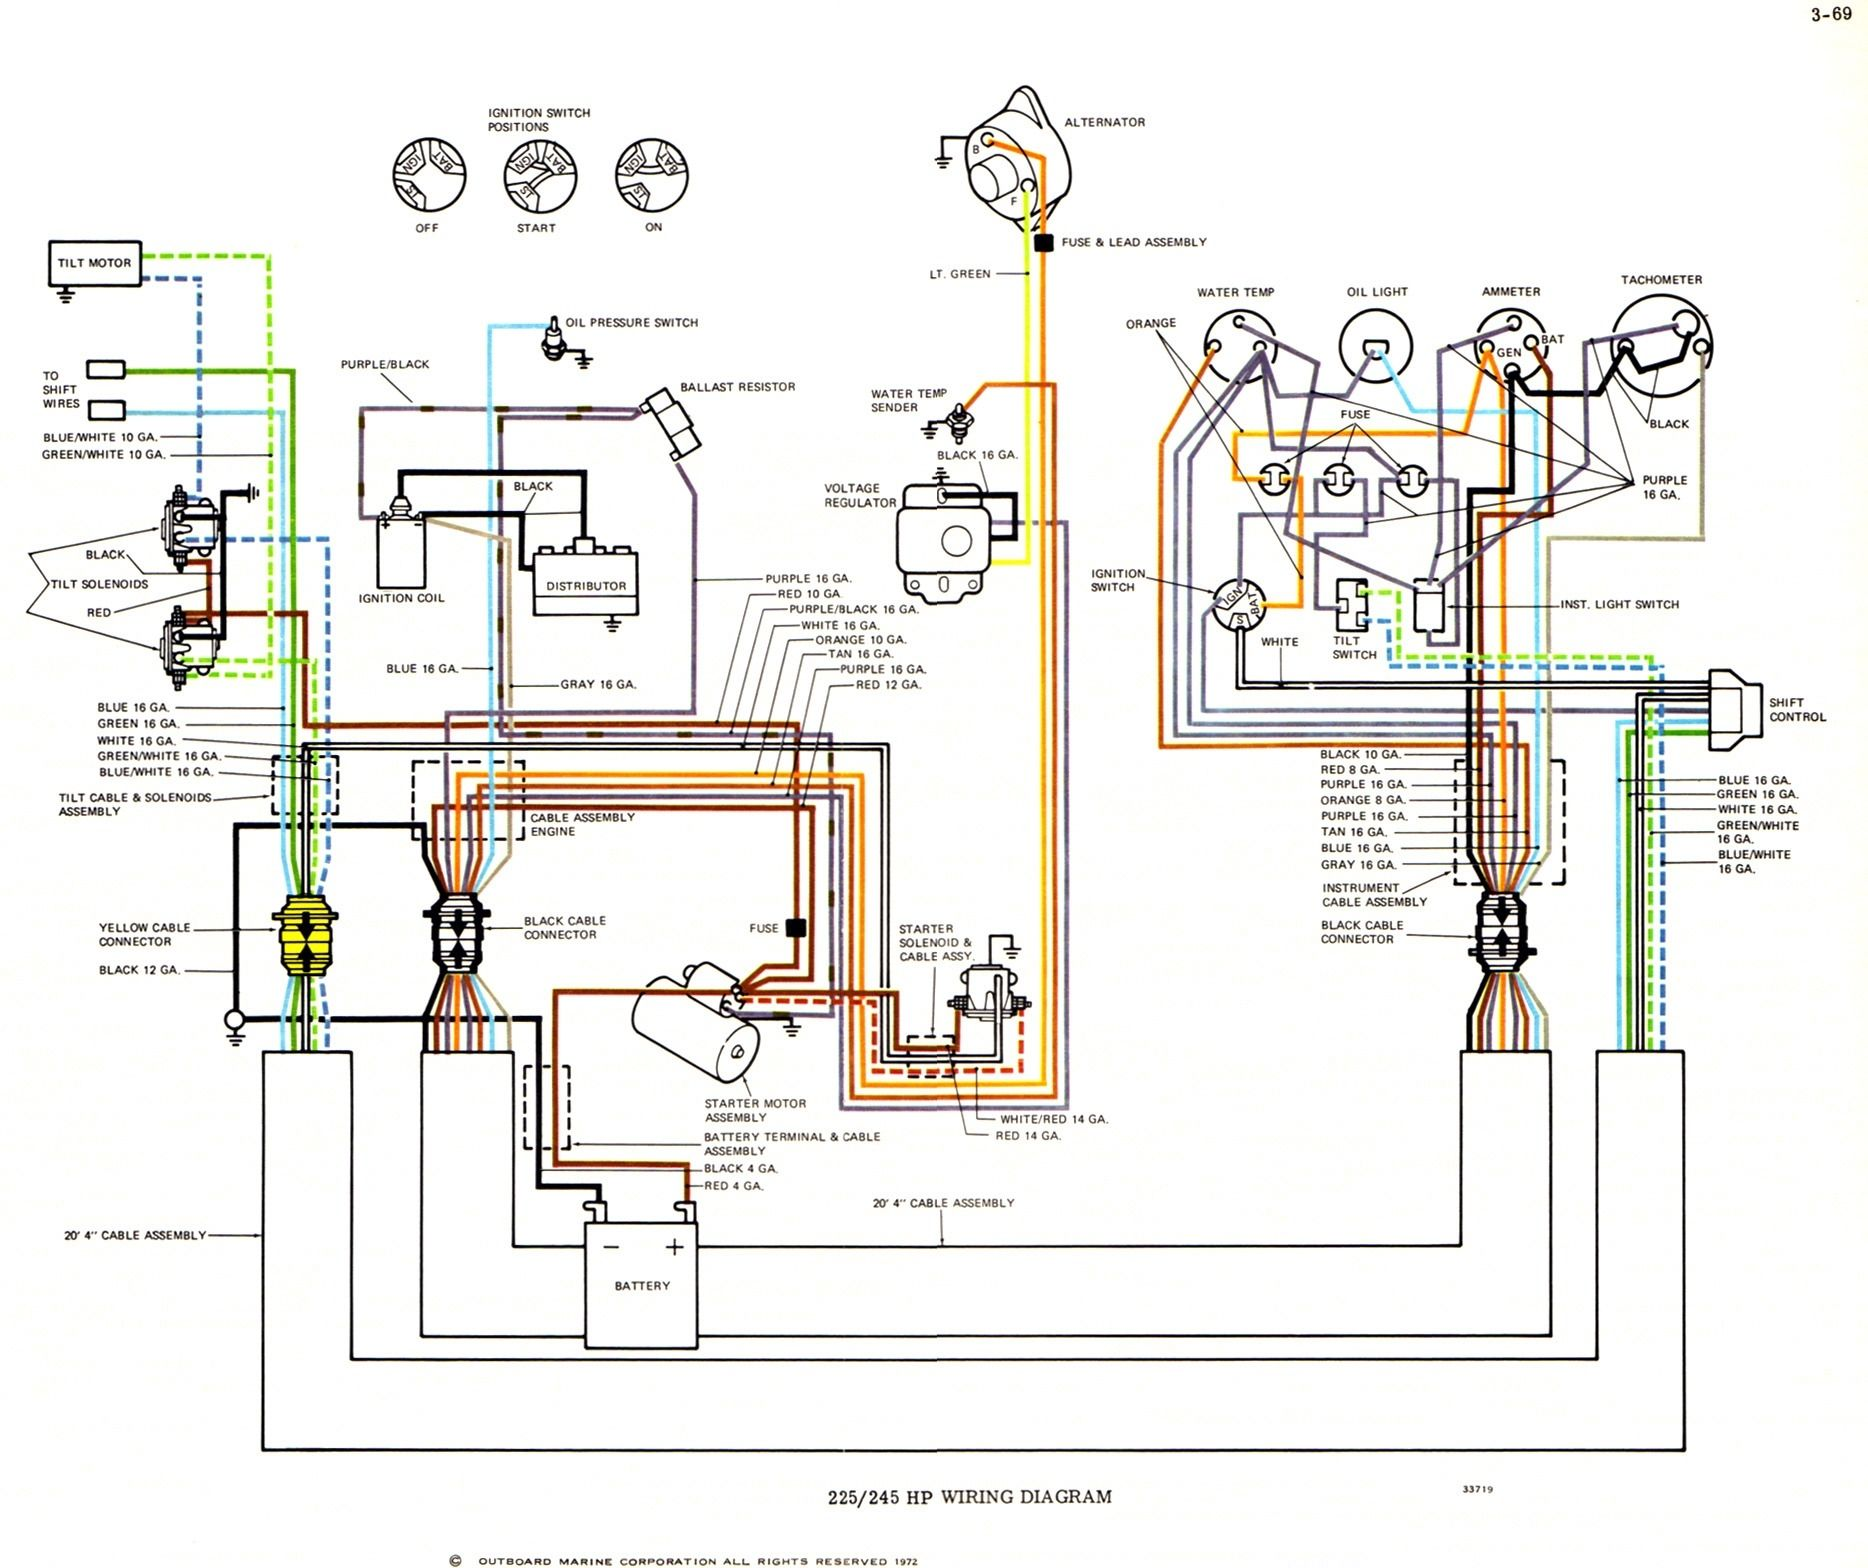 medium resolution of yamaha boat wiring blog wiring diagram yamaha boat wiring schematic yamaha boat wiring diagram